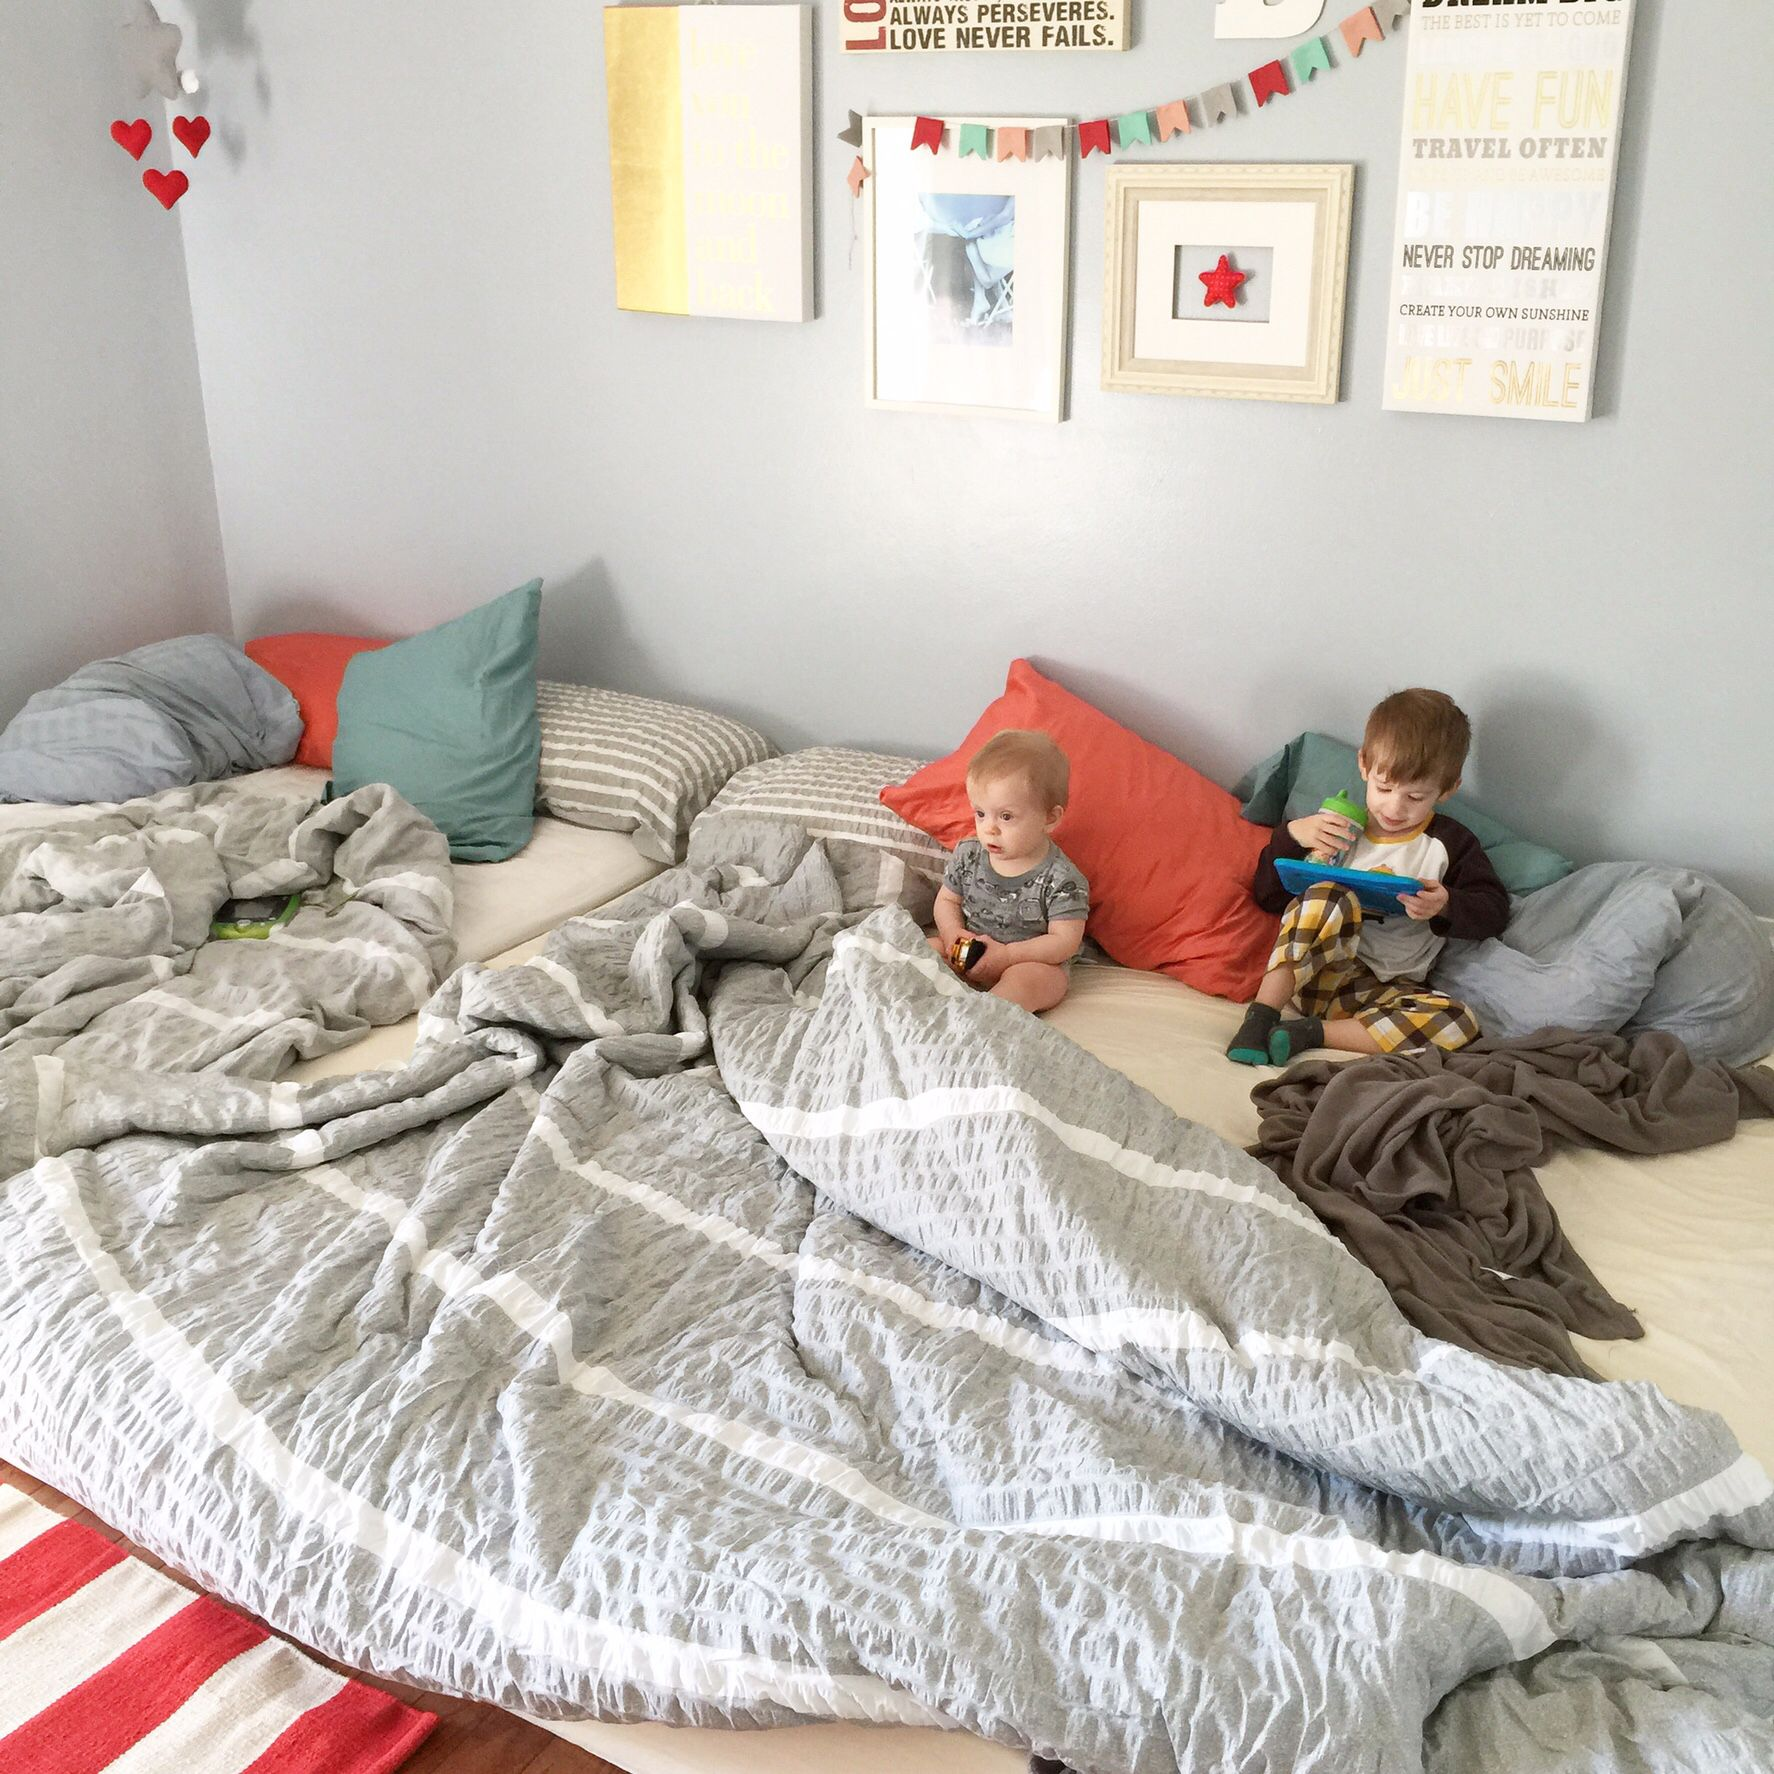 Family bed bed sharing co sleeping co sleeper family bedroom wall gallery gallery wall floor bed bed on floor boho bedroom